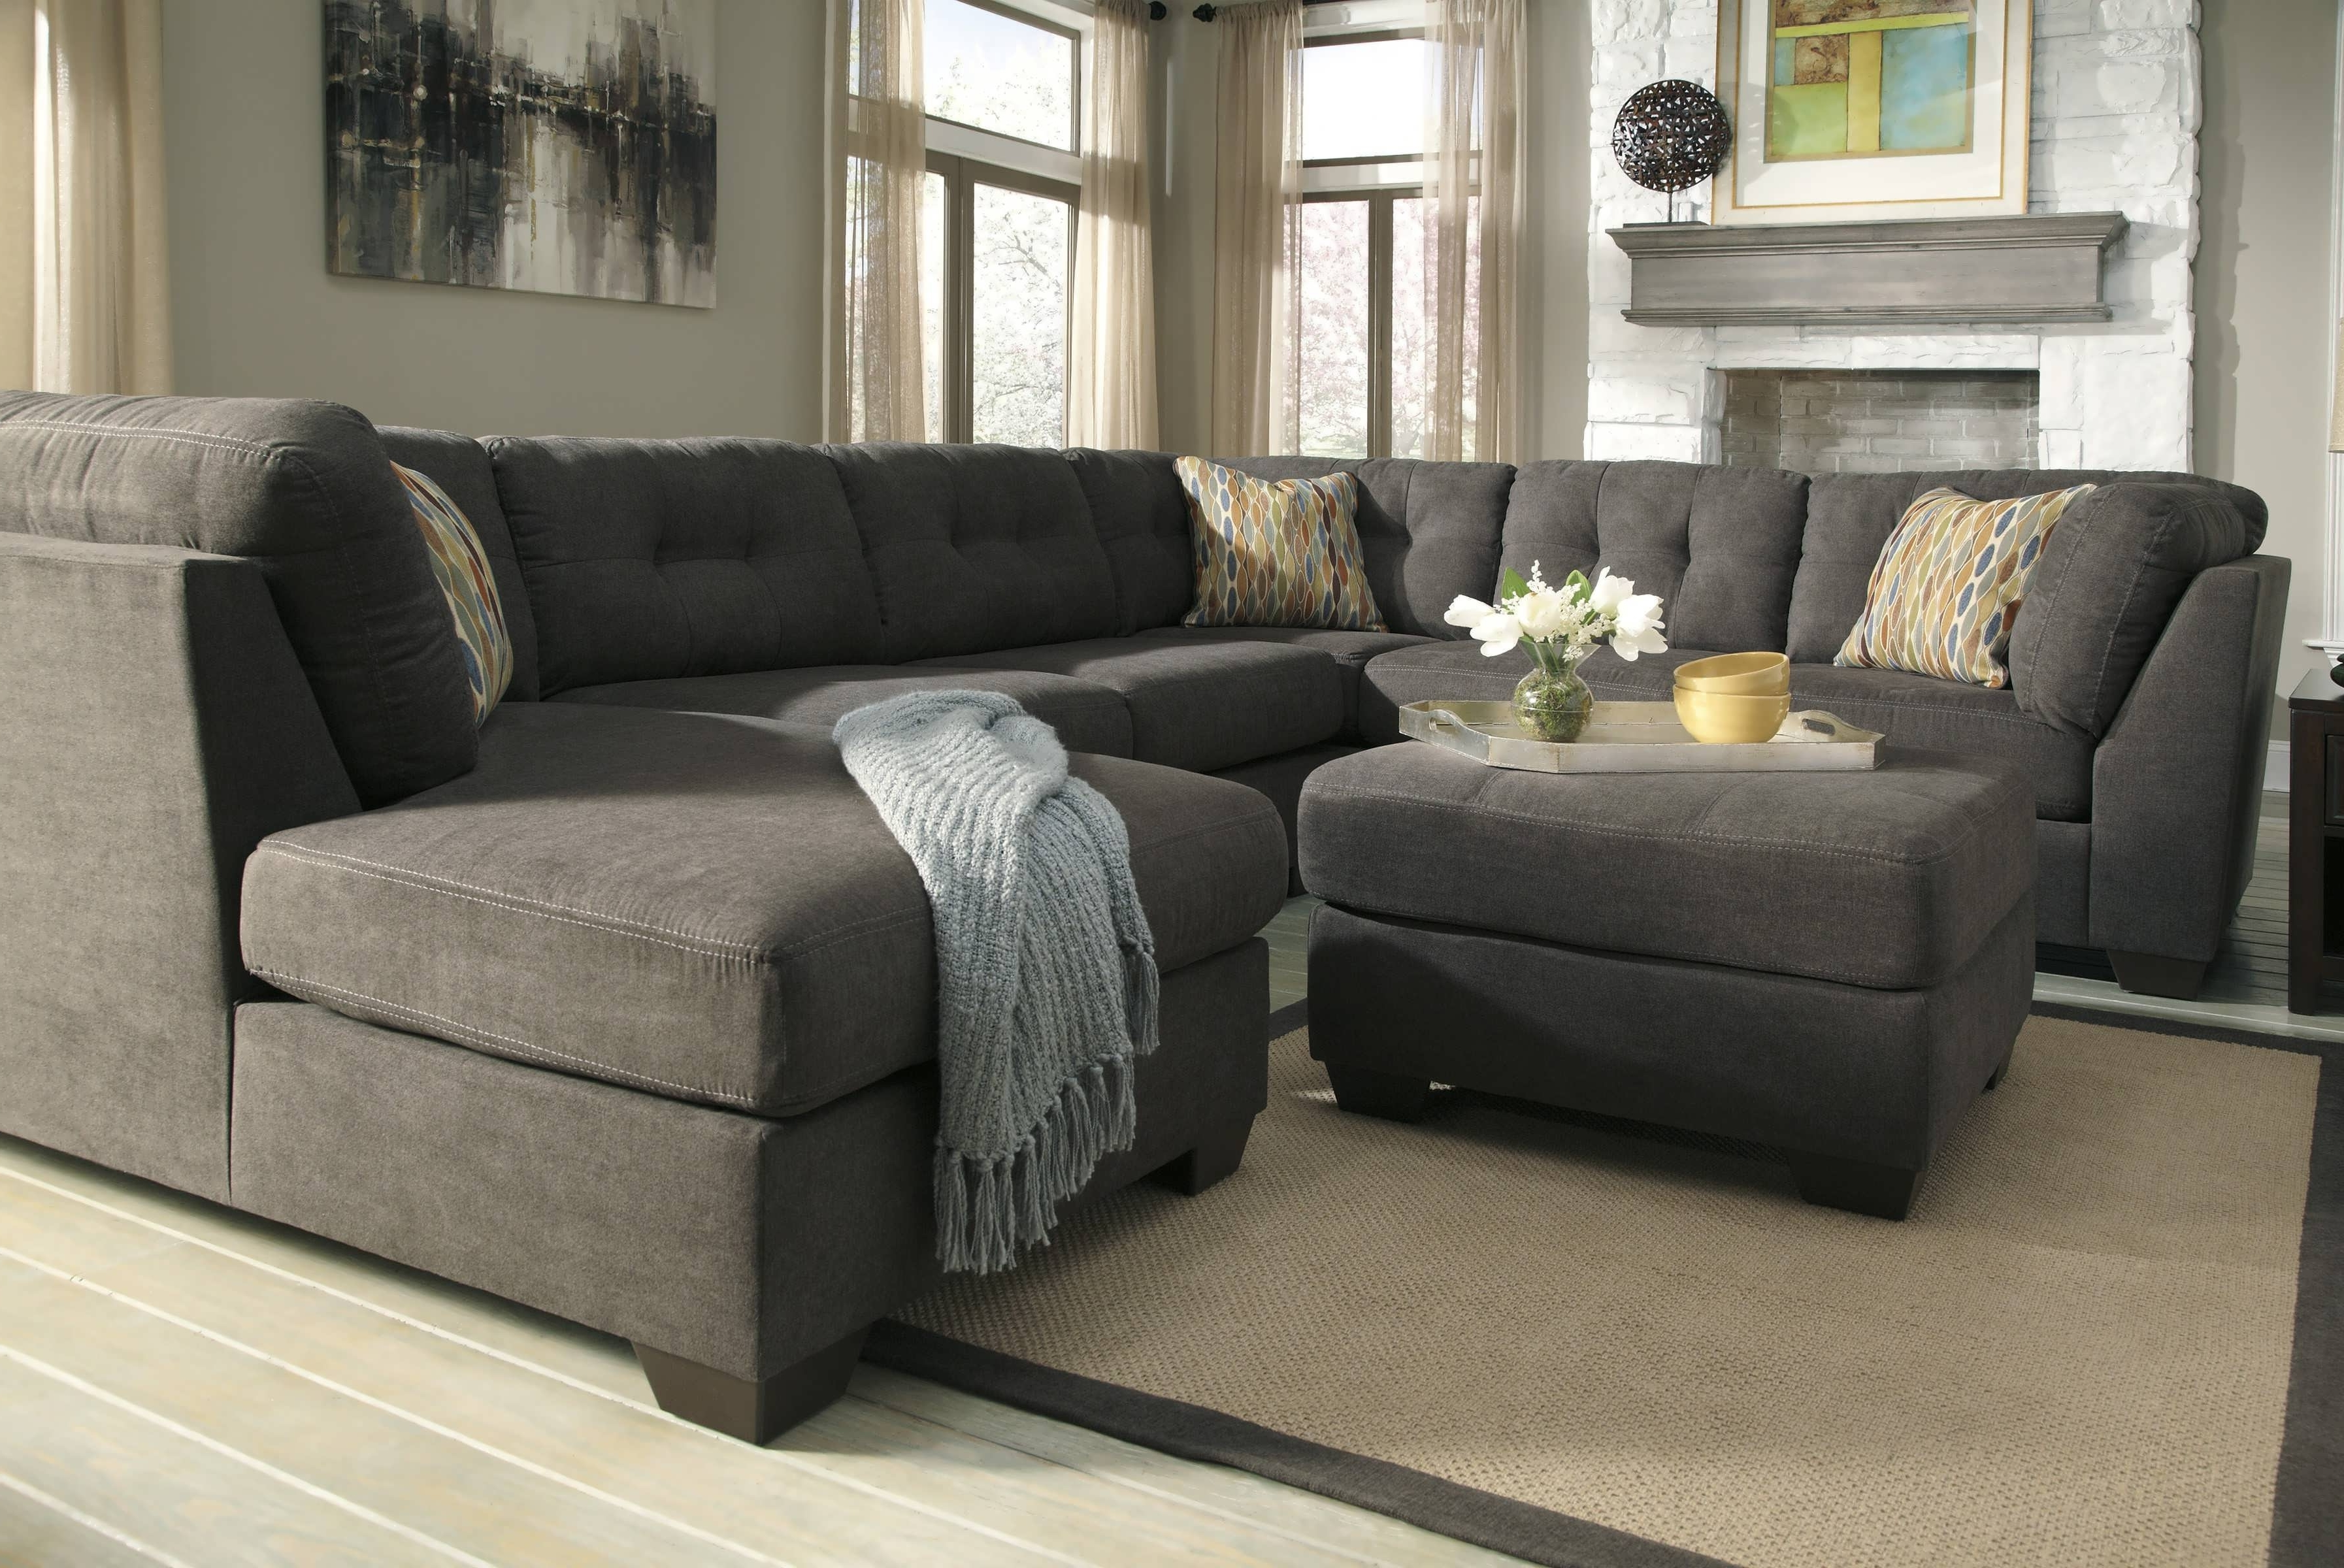 Sofa : L Couch Modular Sectional Charcoal Gray Sectional Sofa With With Most Popular Charcoal Gray Sectional Sofas With Chaise Lounge (View 8 of 15)